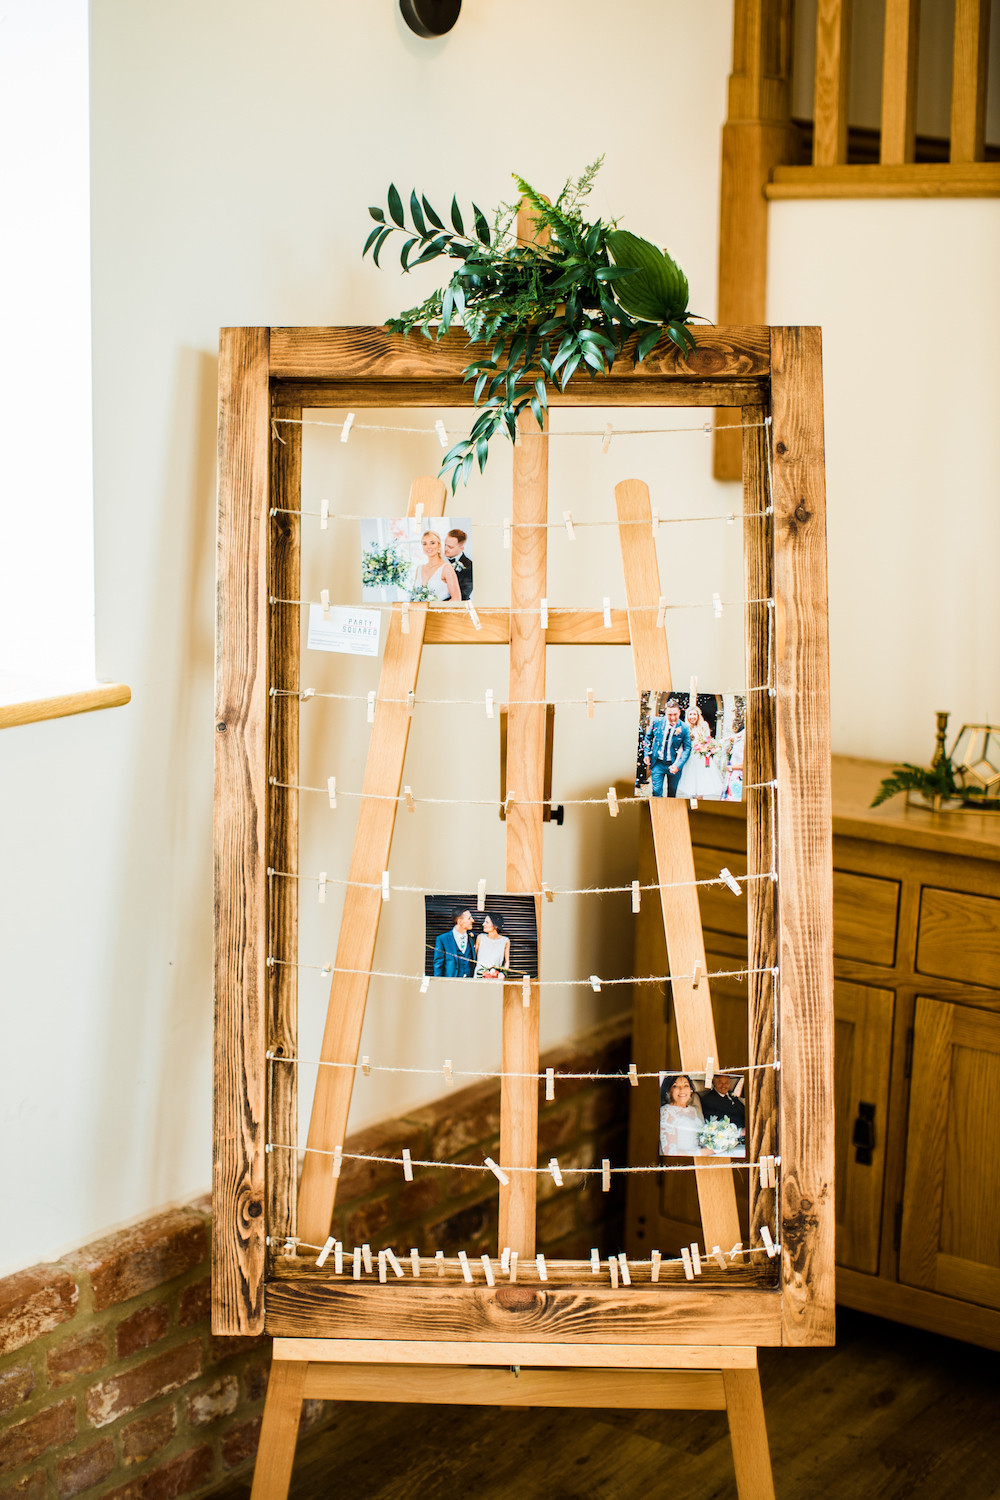 Polaroid Guest Book Gallery Frame on Wooden Artists' Easel Wedding Memories Photo Gallery Peg and String Frame